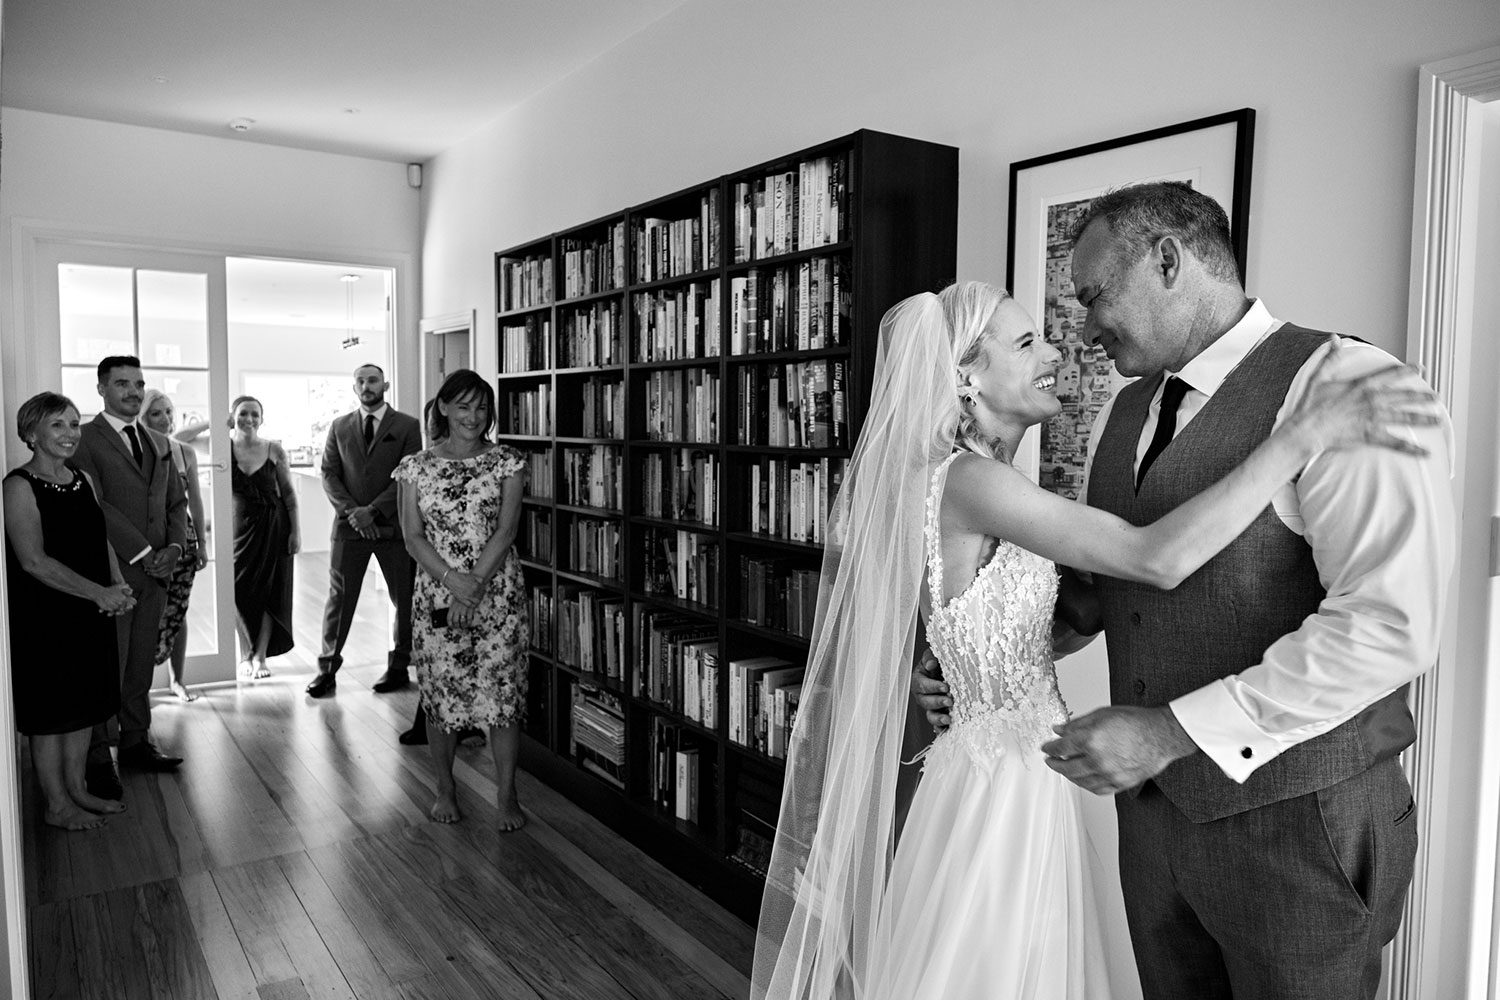 Bride wearing bespoke gown made of silk chiffon with delicate flower lace bodice by Vinka bridal designer Auckland - black and white with father